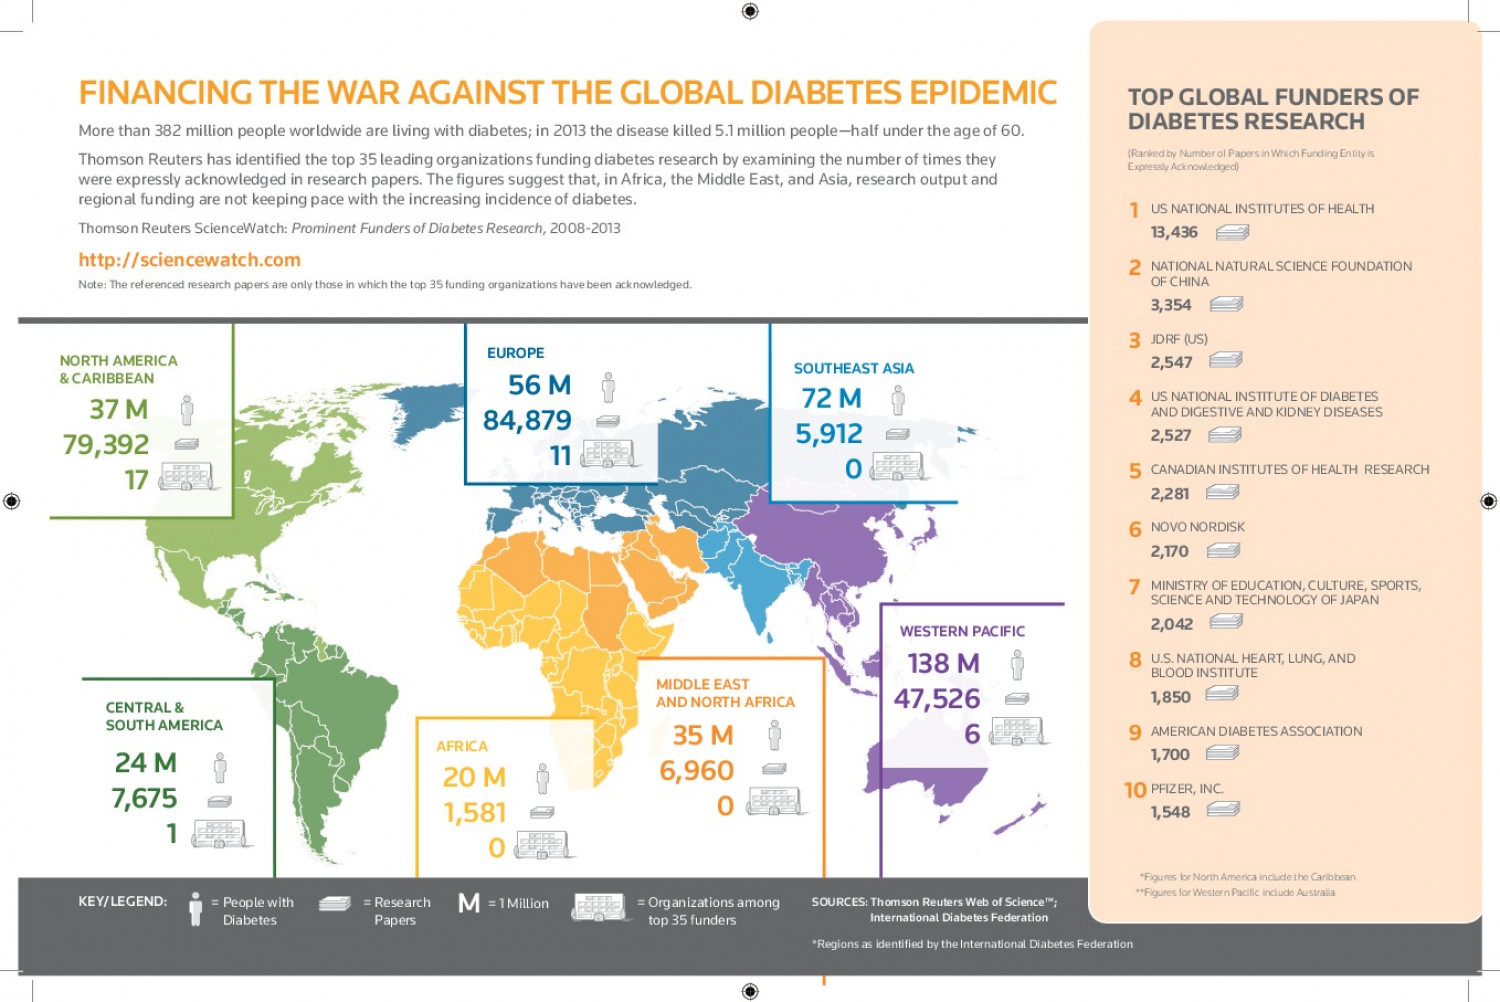 Financing The War Against the Global Diabetes Epidemic Infographic